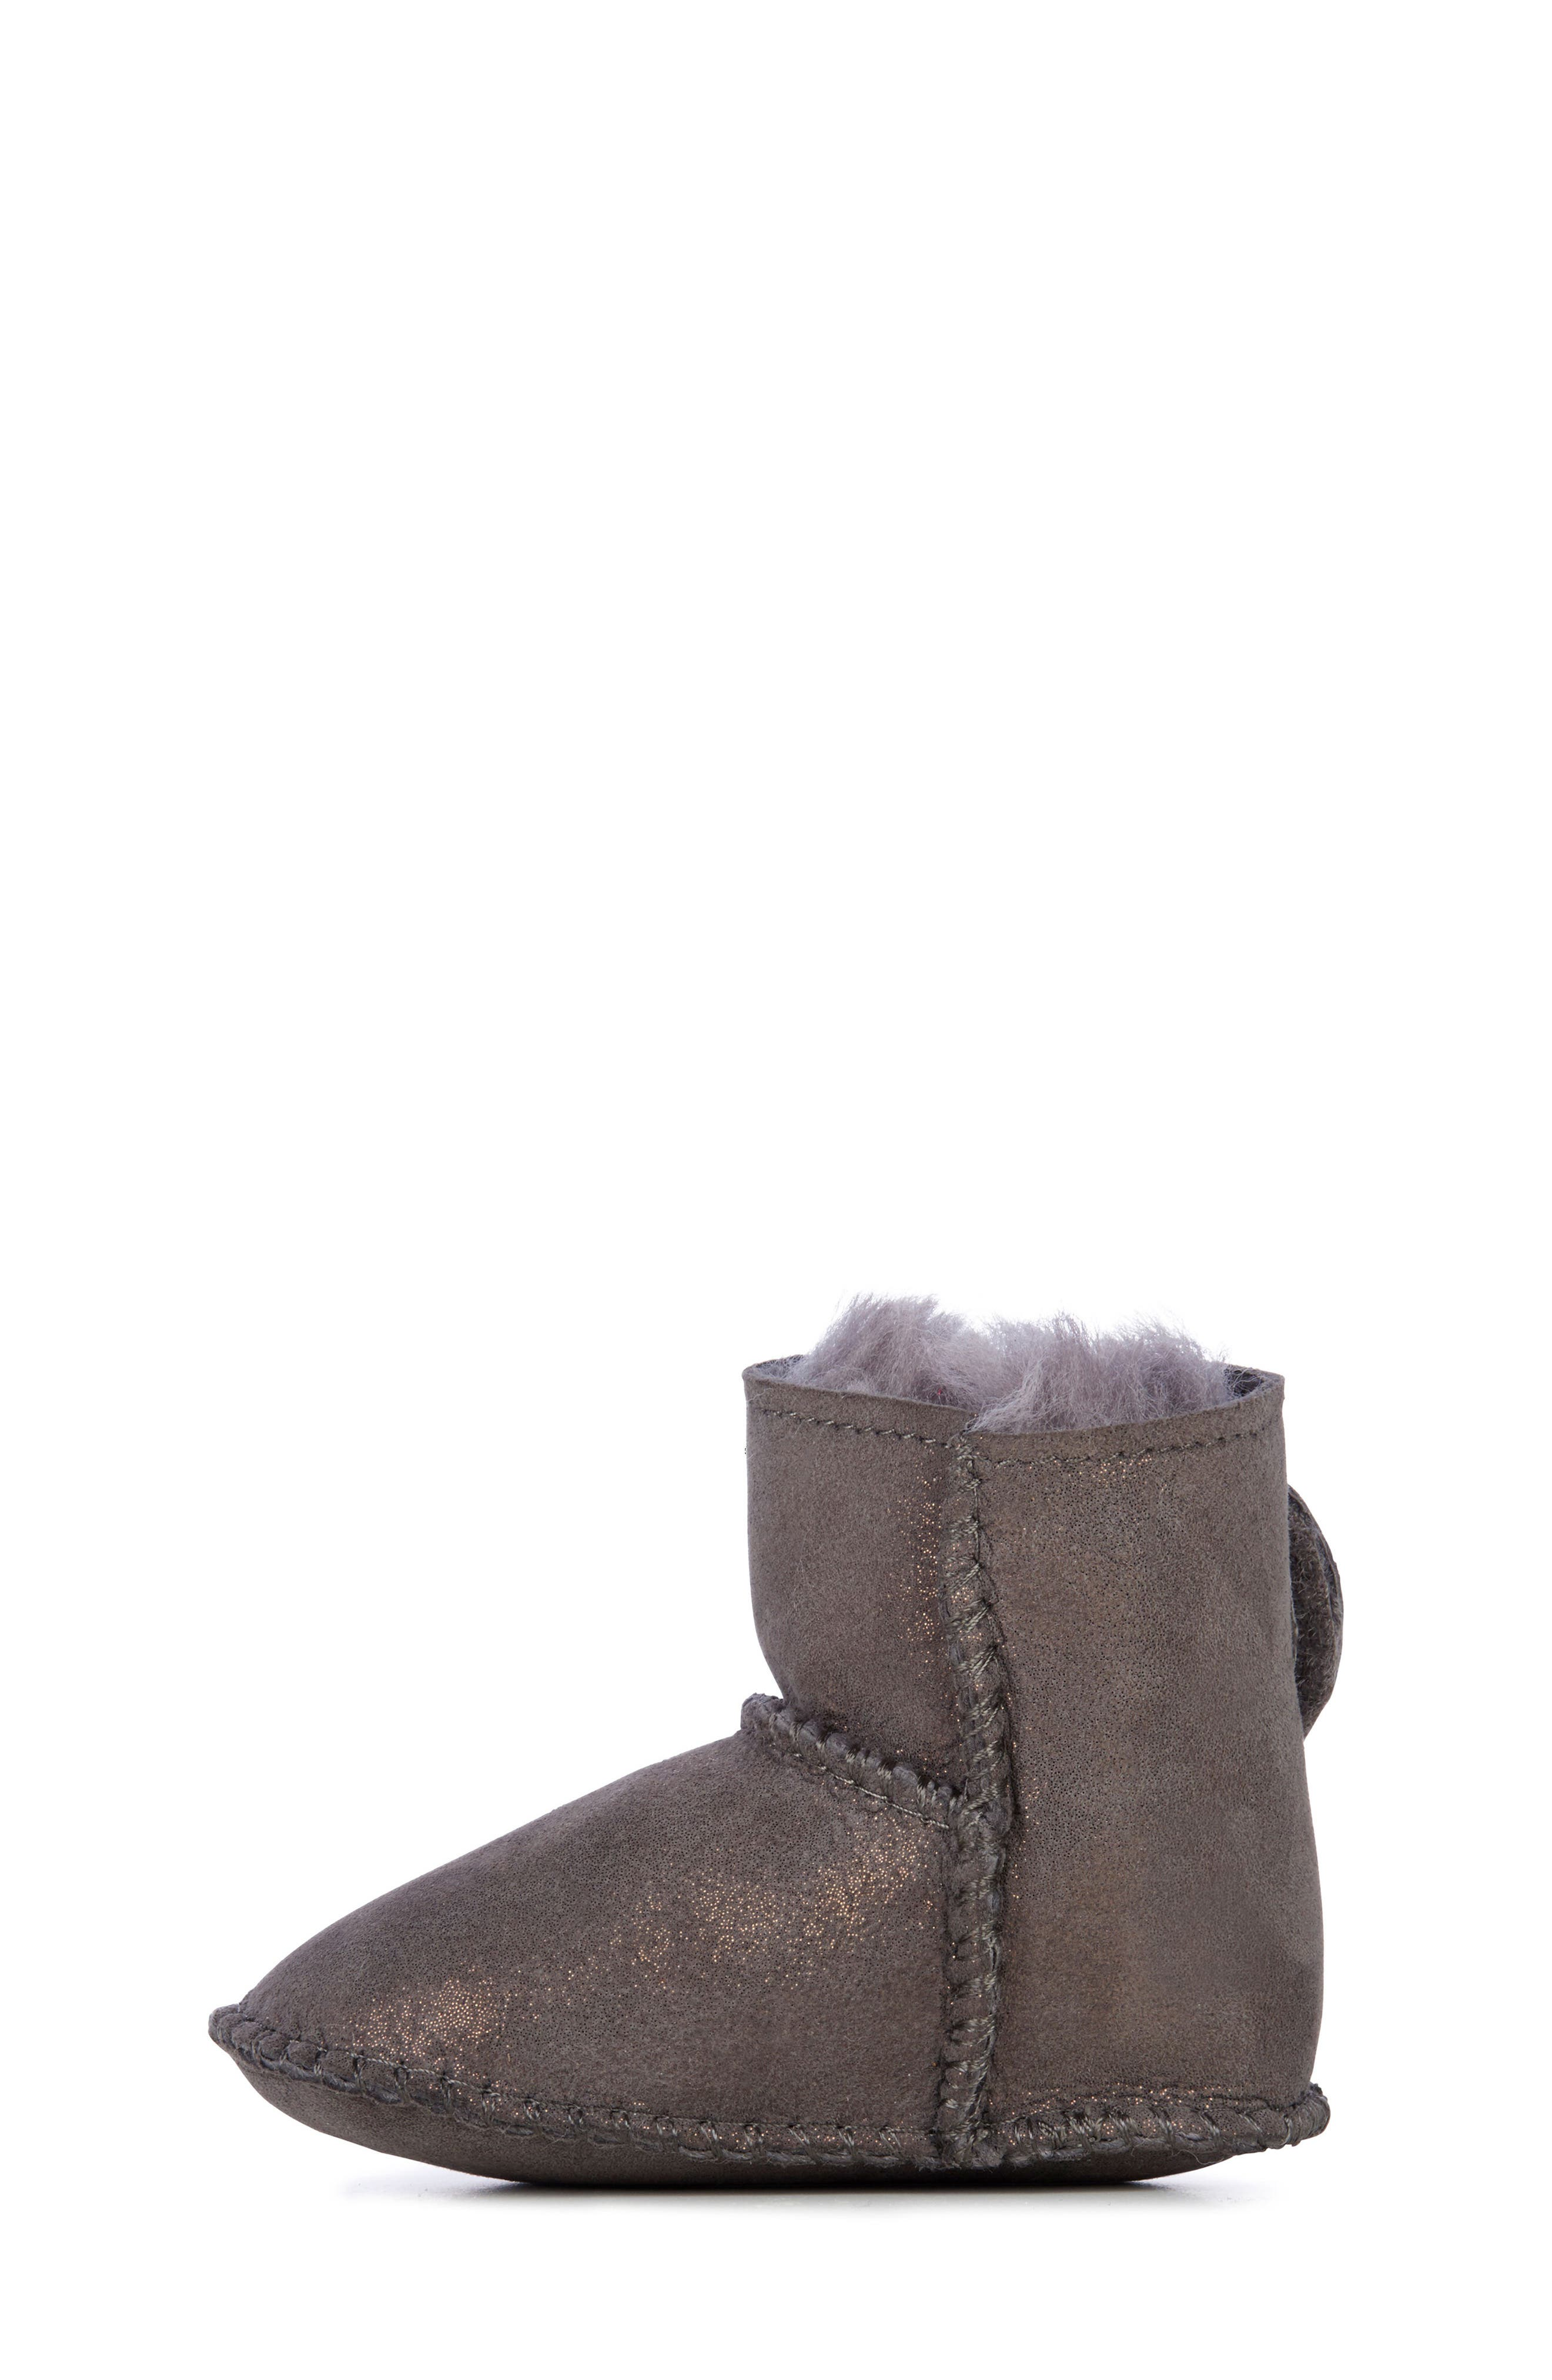 Water Resistant Metallic Bootie,                             Alternate thumbnail 9, color,                             CHARCOAL